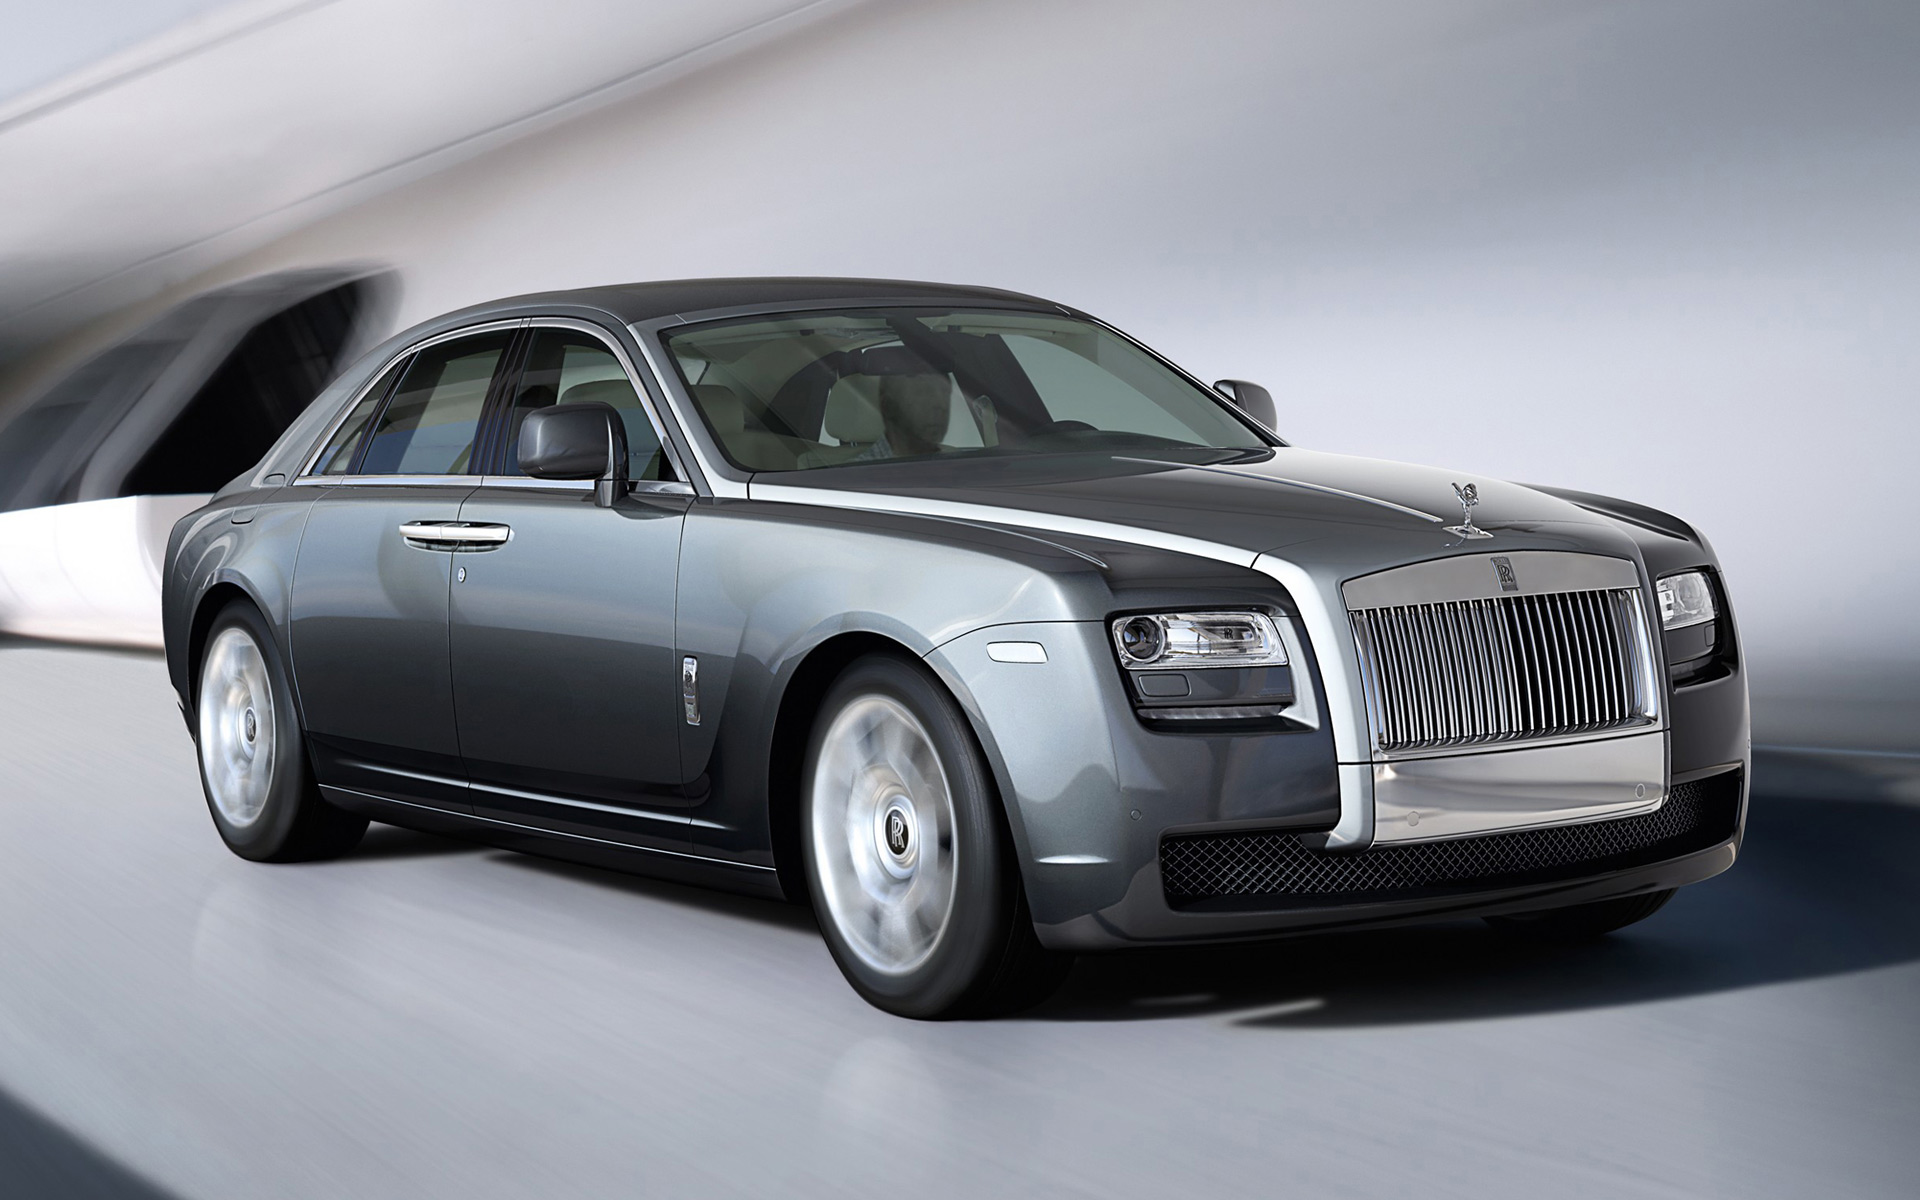 Rolls Royce Ghost Wallpaper High Quality